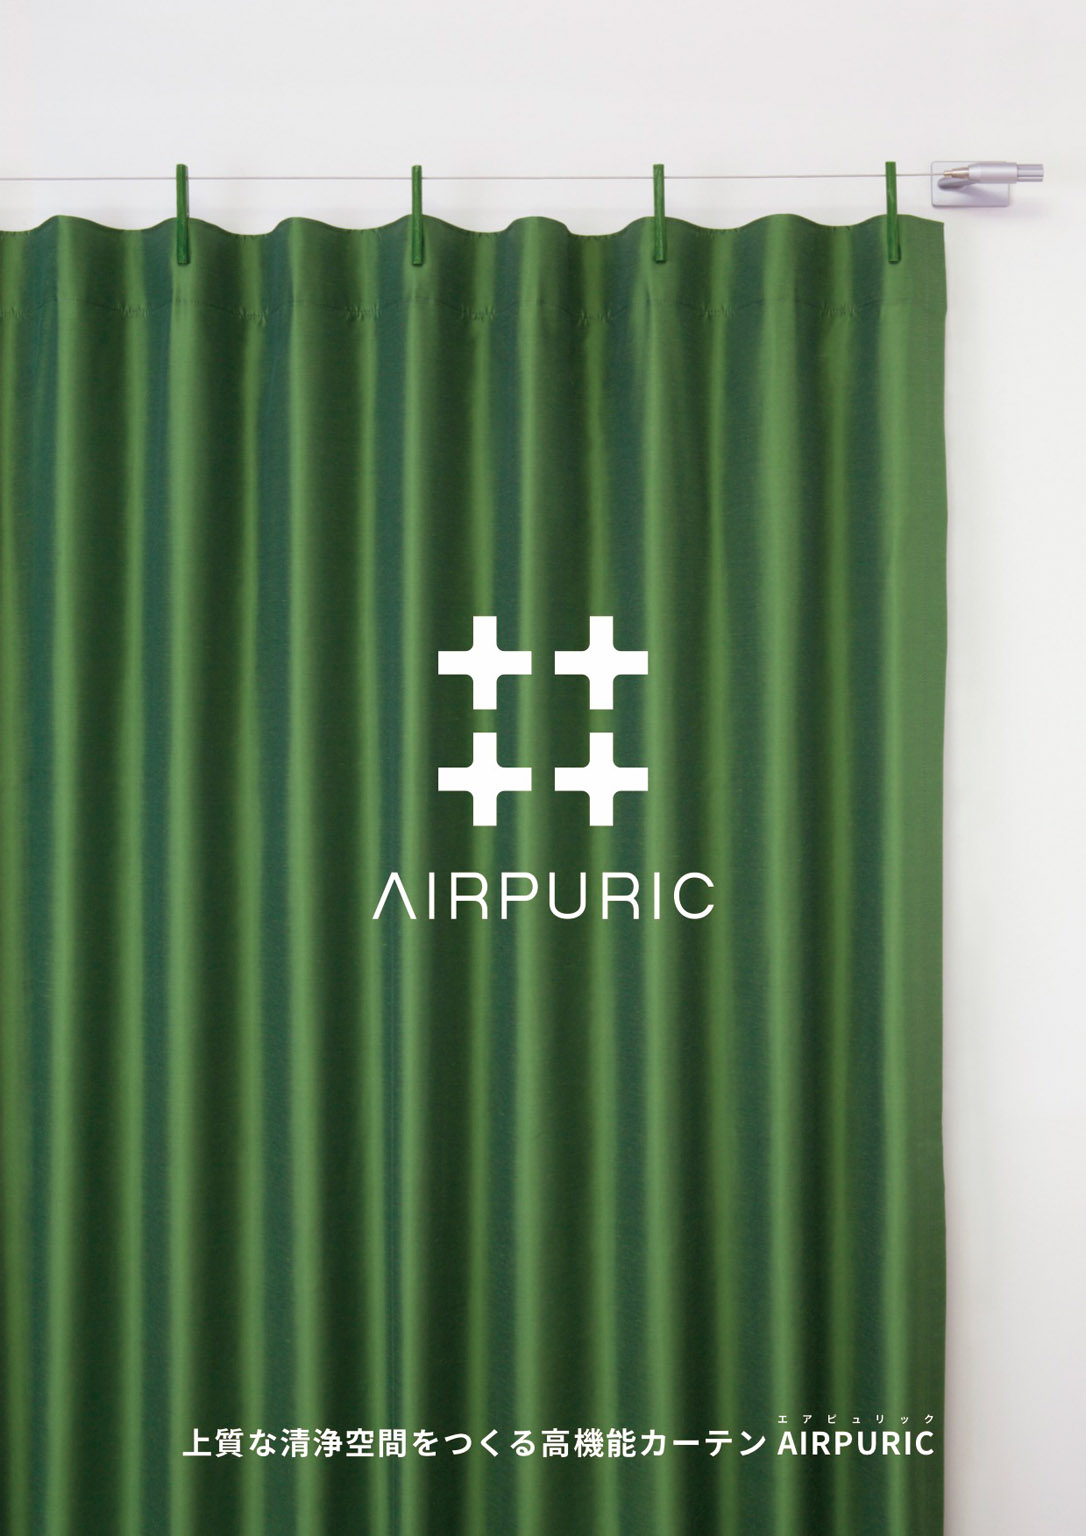 AIRPURIC pamphlet